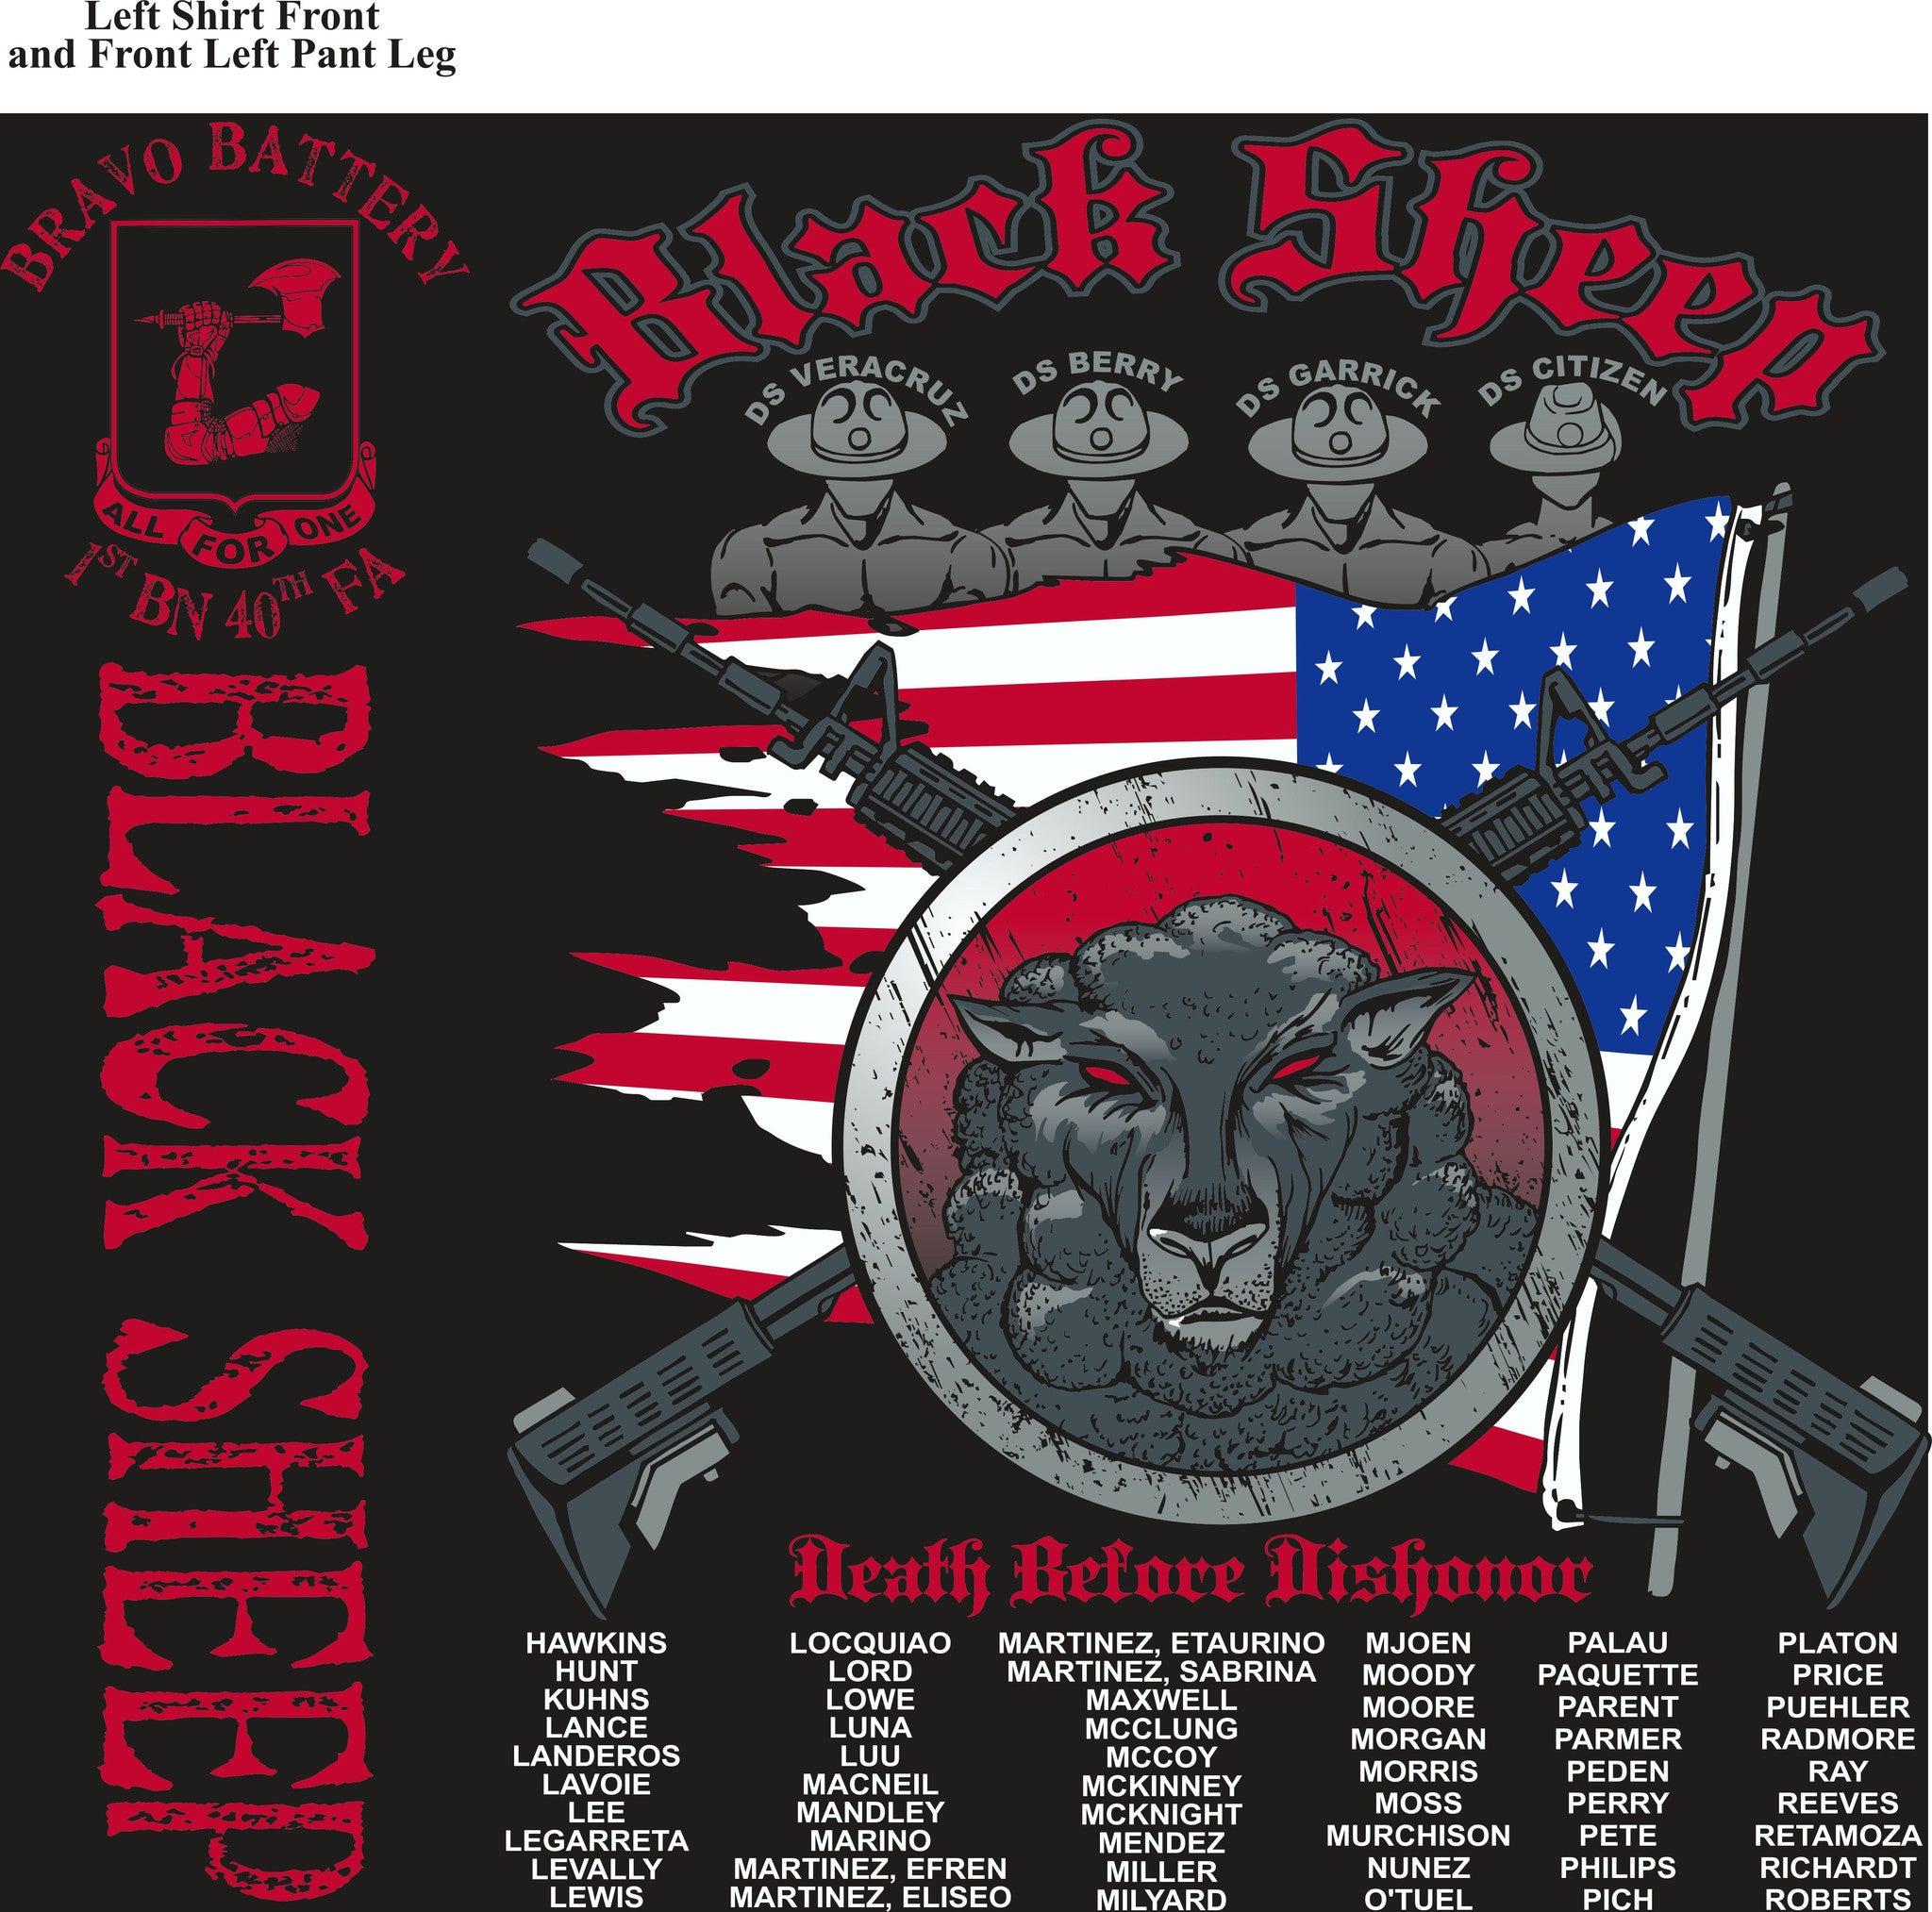 PLATOON SHIRTS (2nd generation print) BRAVO 1st 40th BLACK SHEEP OCT 2016